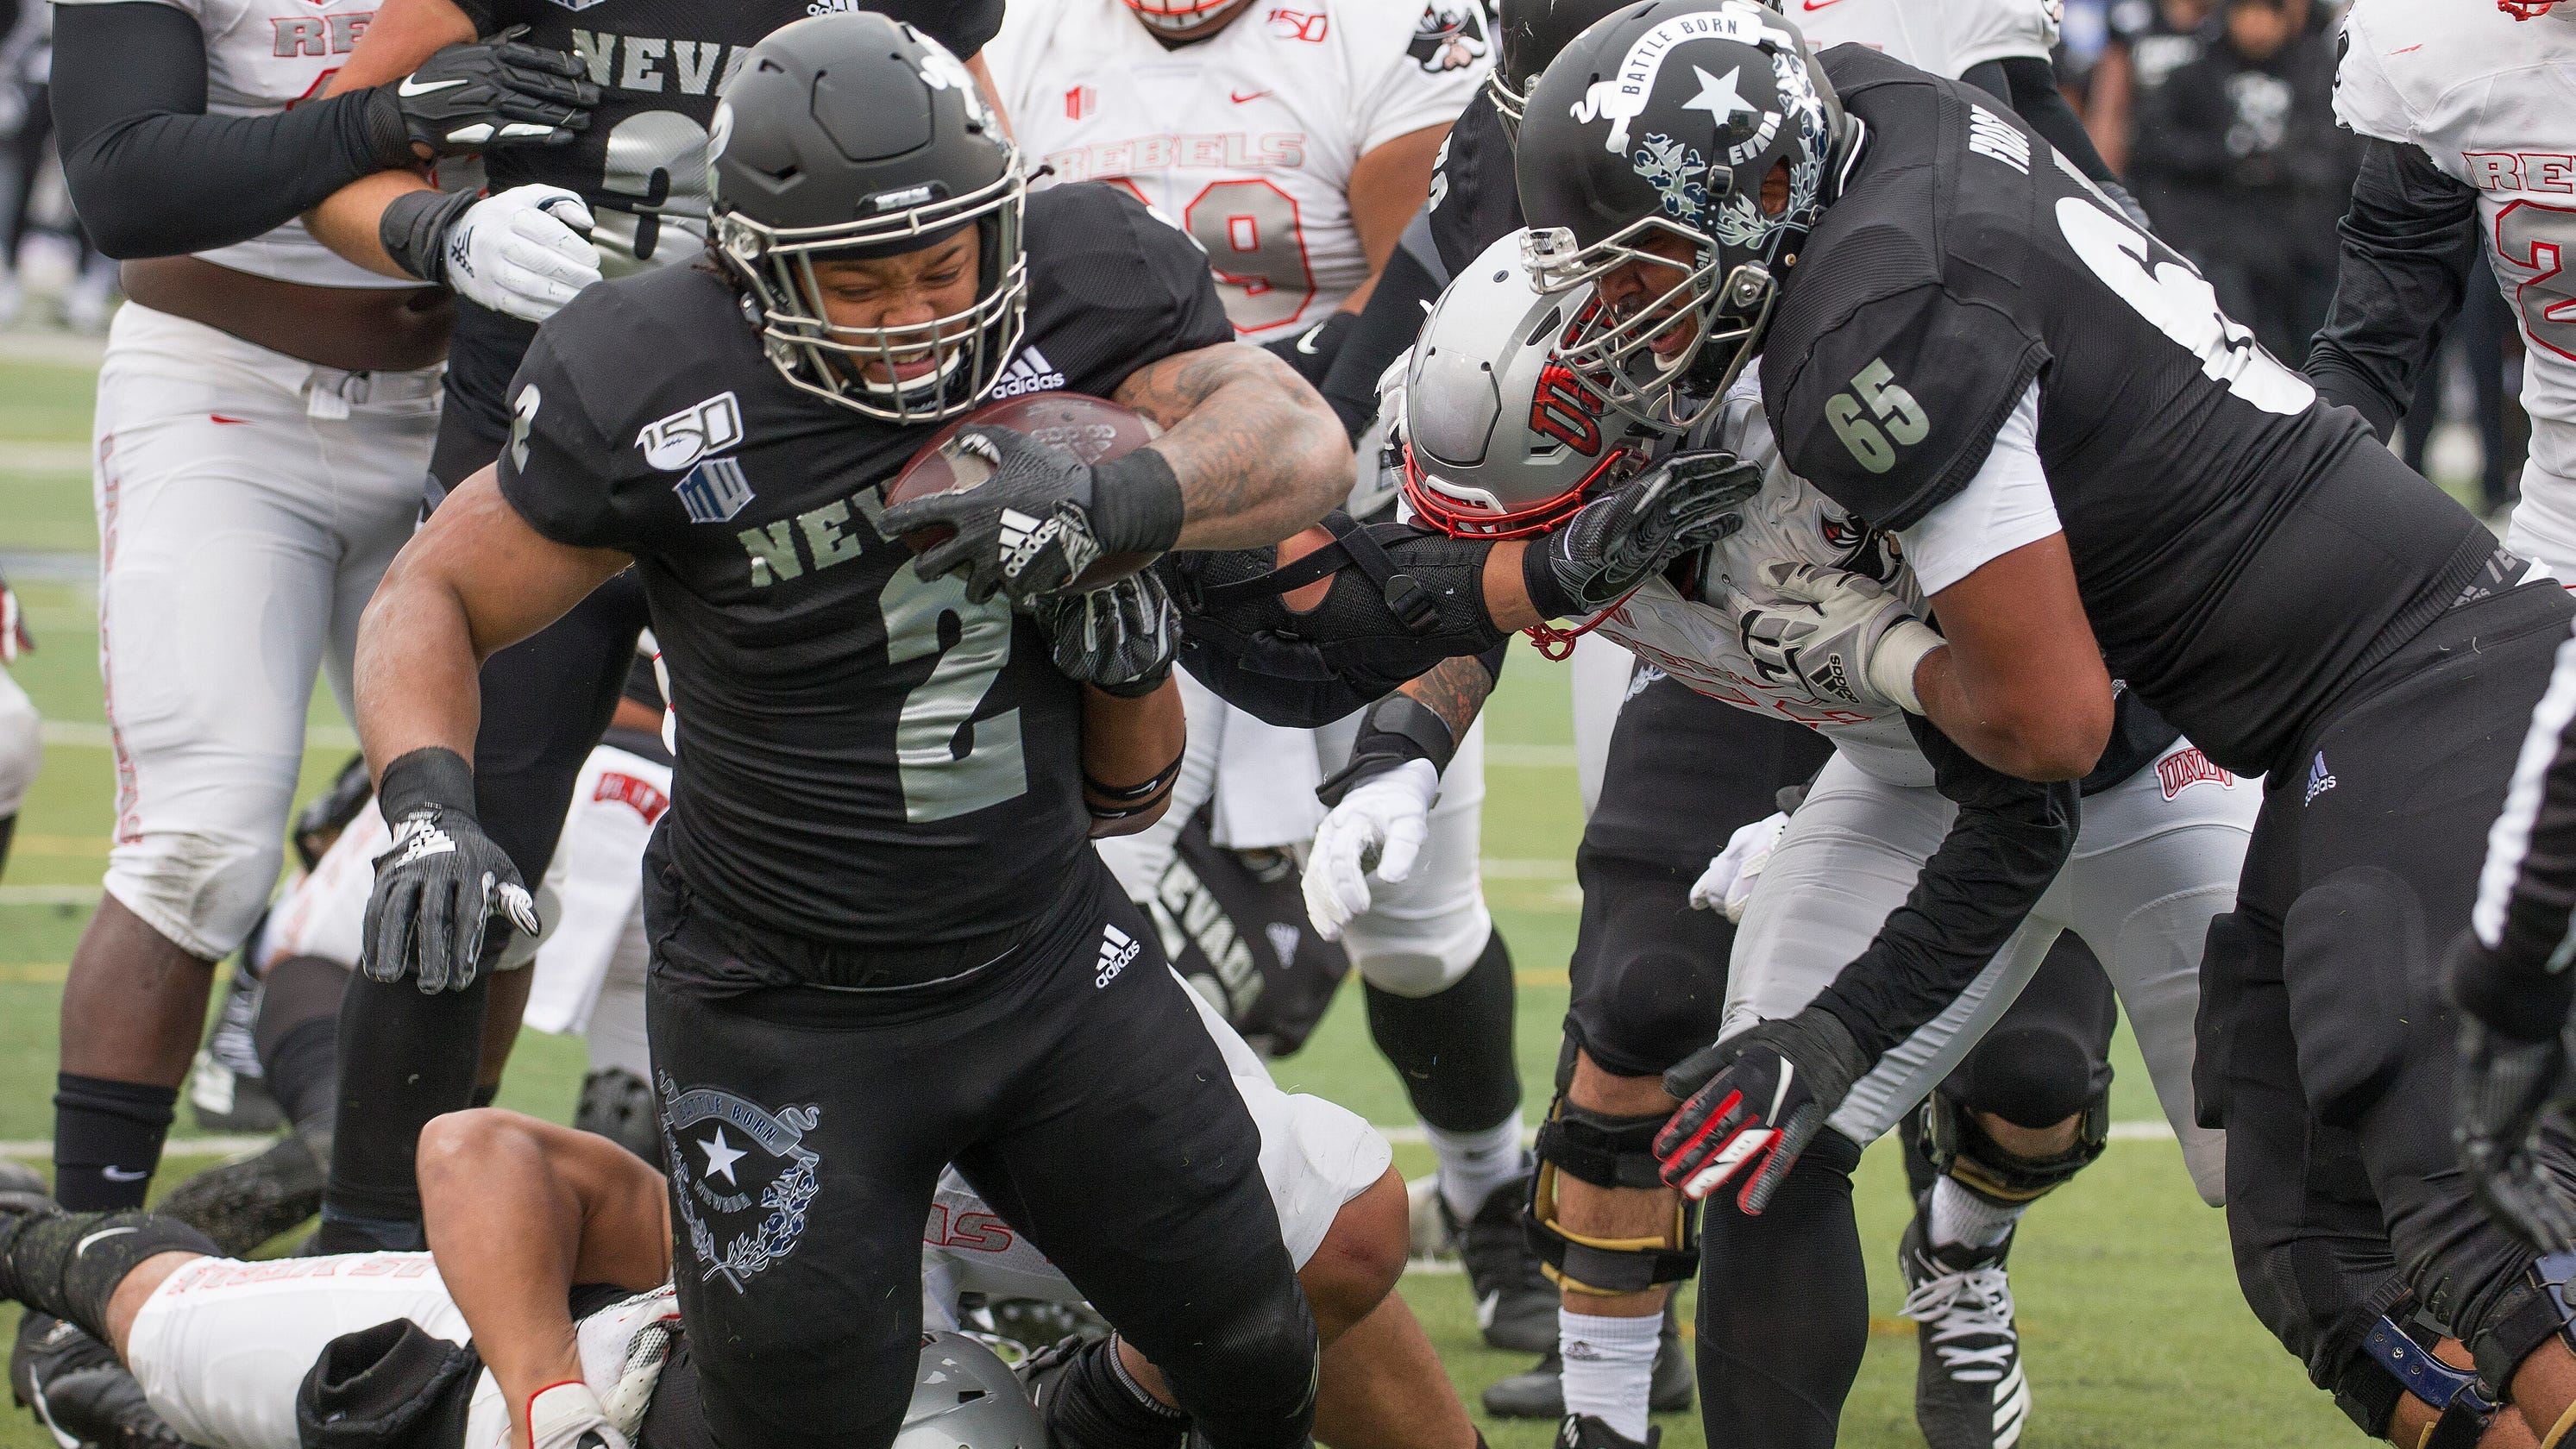 Nevada football: Wolf Pack looks to bring Fremont Cannon back home with win over UNLV